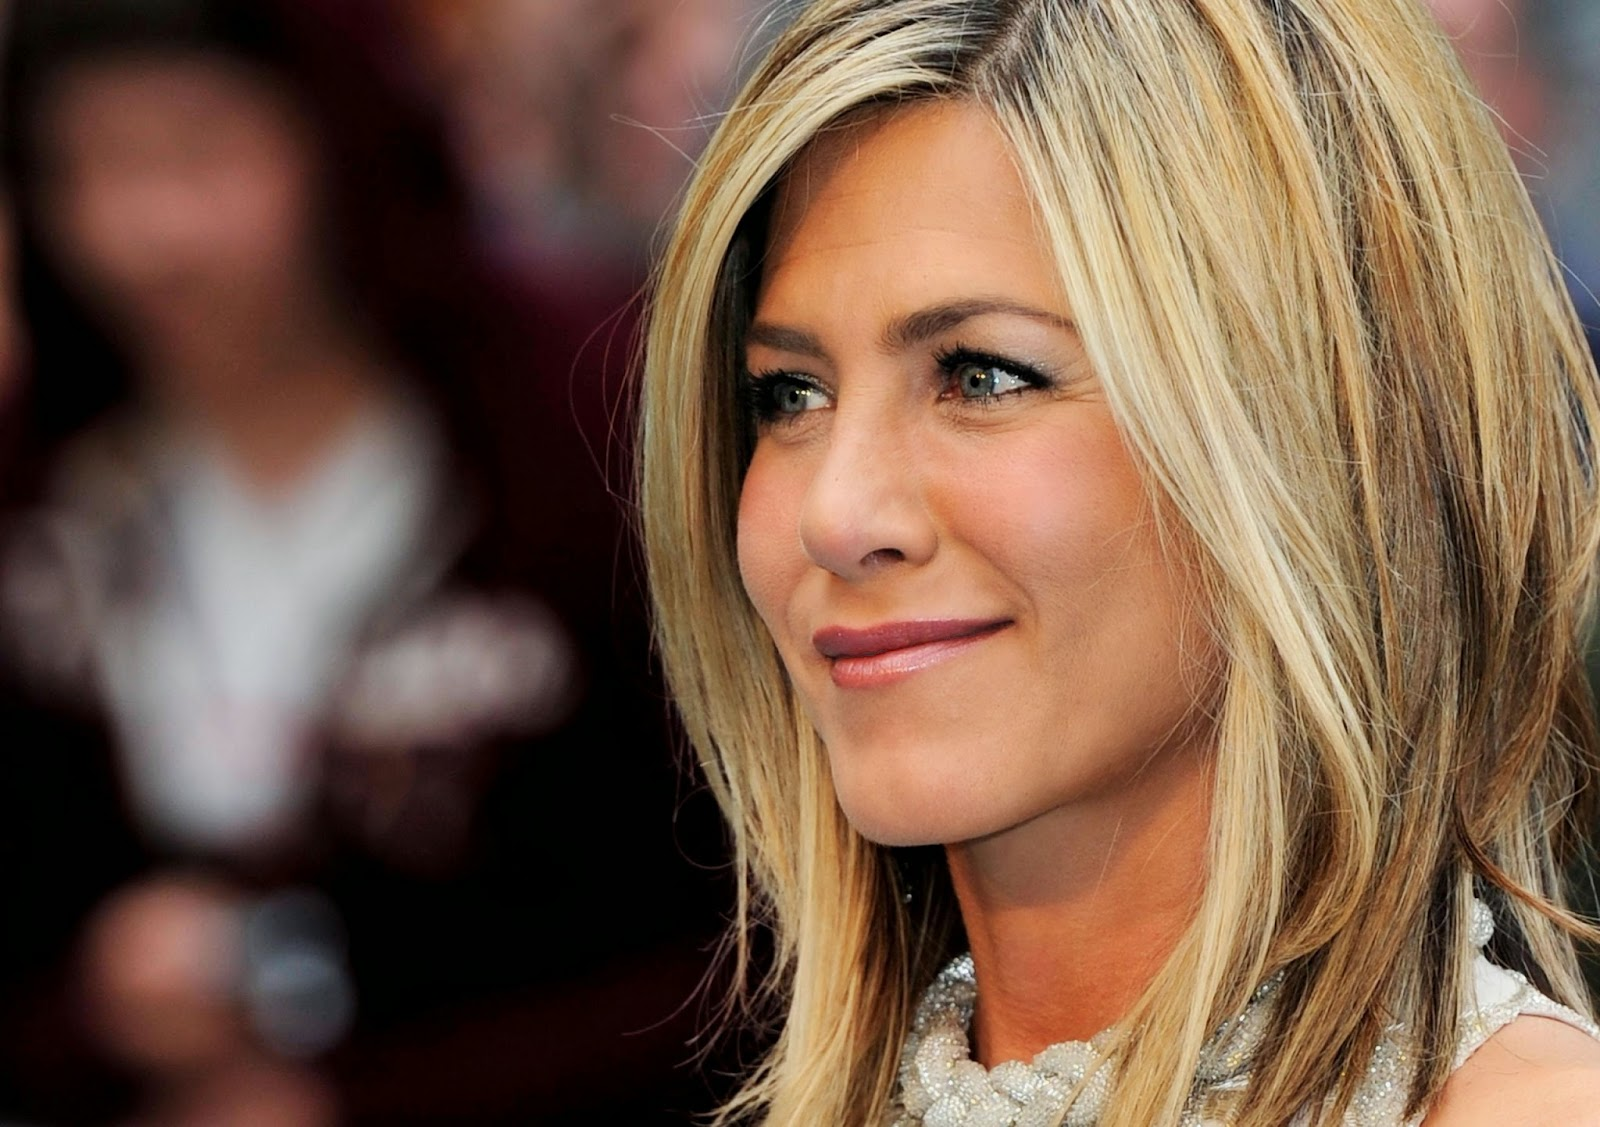 Jennifer Aniston Hd Wallpapers Free Download